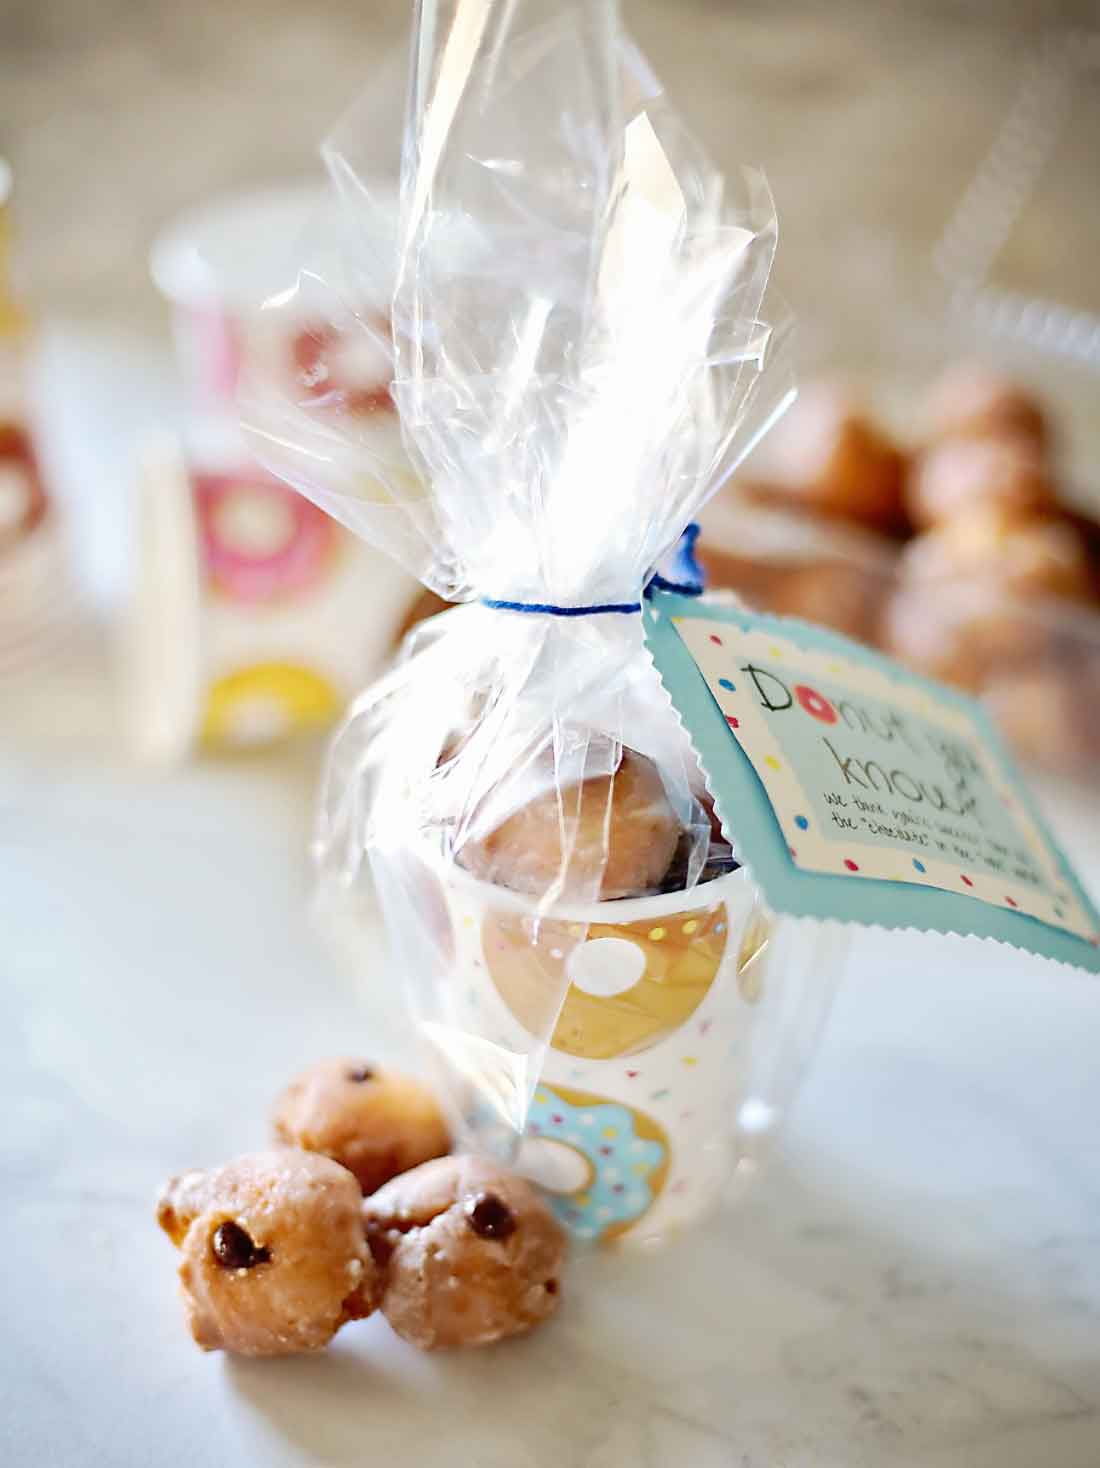 Chocolate-filled Donut Holes Gift | Tangled with Taste